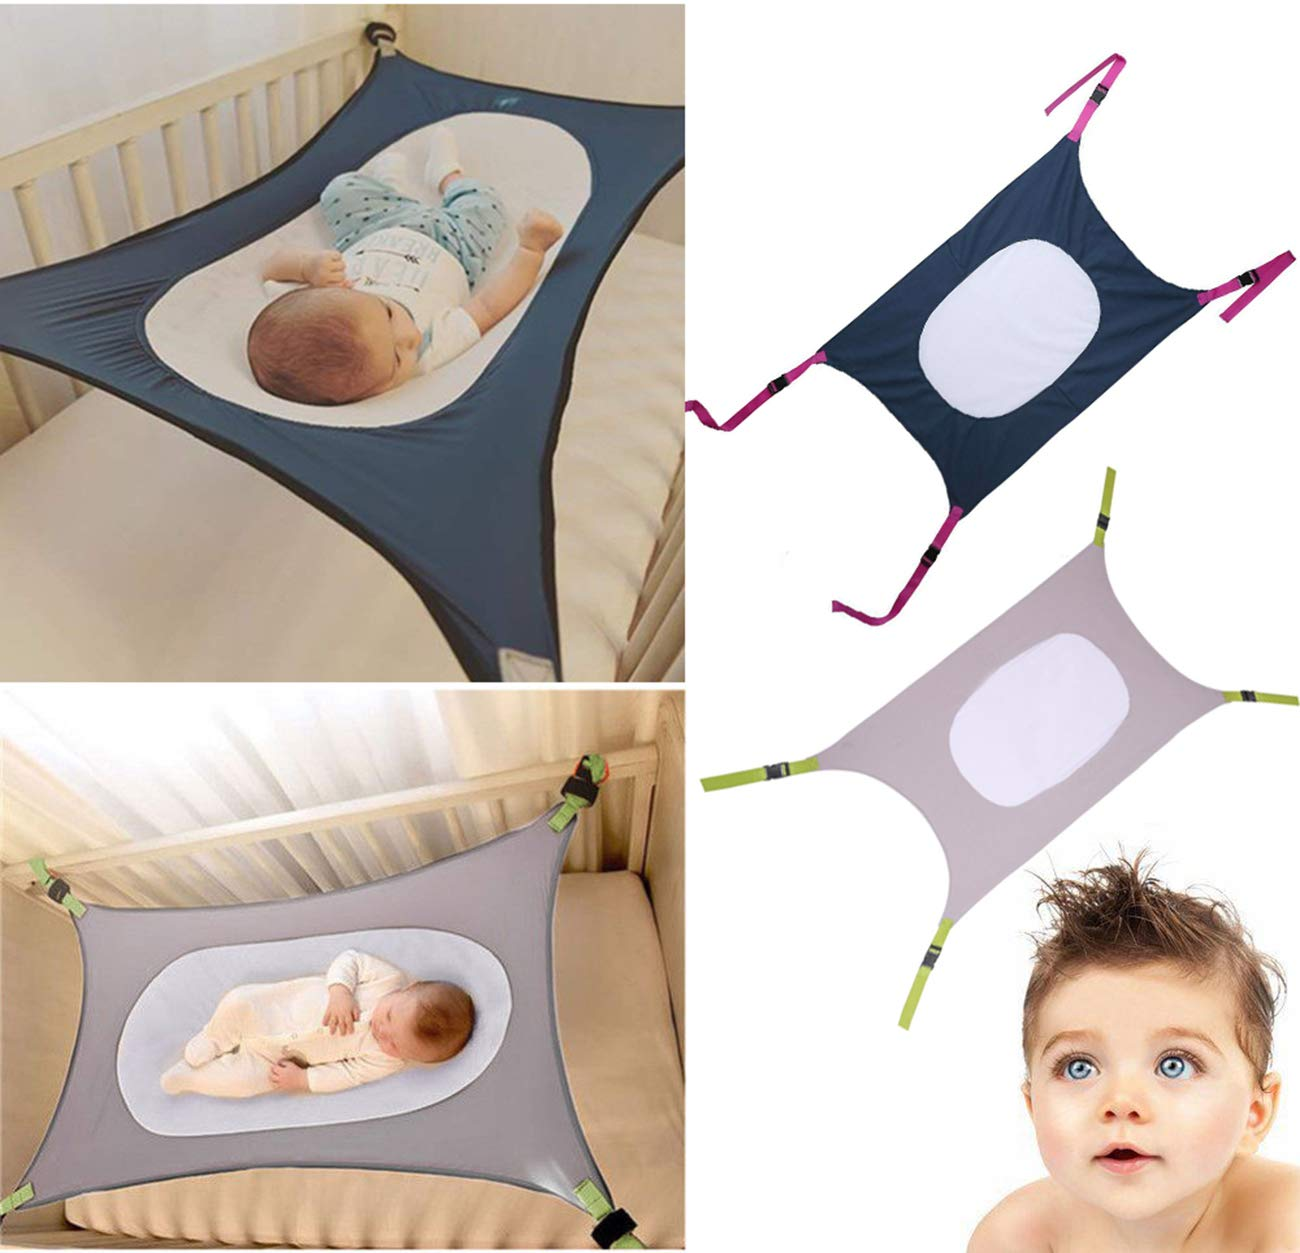 Porfiya Newborn Baby Hammock Swing Folding Infant Crib Safety Nursery Sleeping Bed with Strong Adjustable Oxford Straps Imitating Uterus Double Layer Breathable Net for Infants Mimics Womb Crad (Gray)